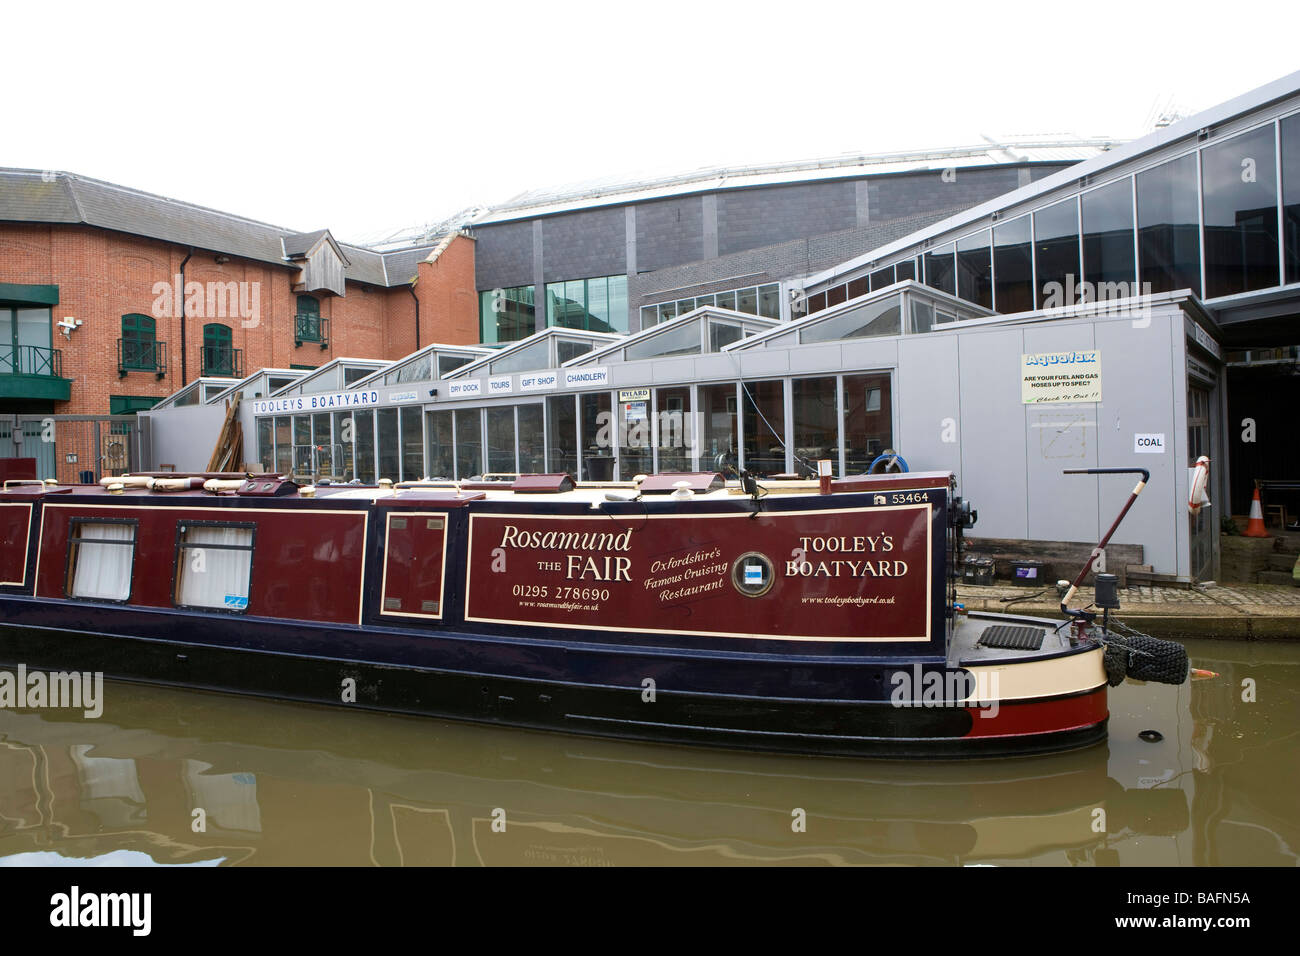 The restaurant boat Rosamund the Fair moored up alongside Tooleys boatyard and canal museum Banbury - Stock Image